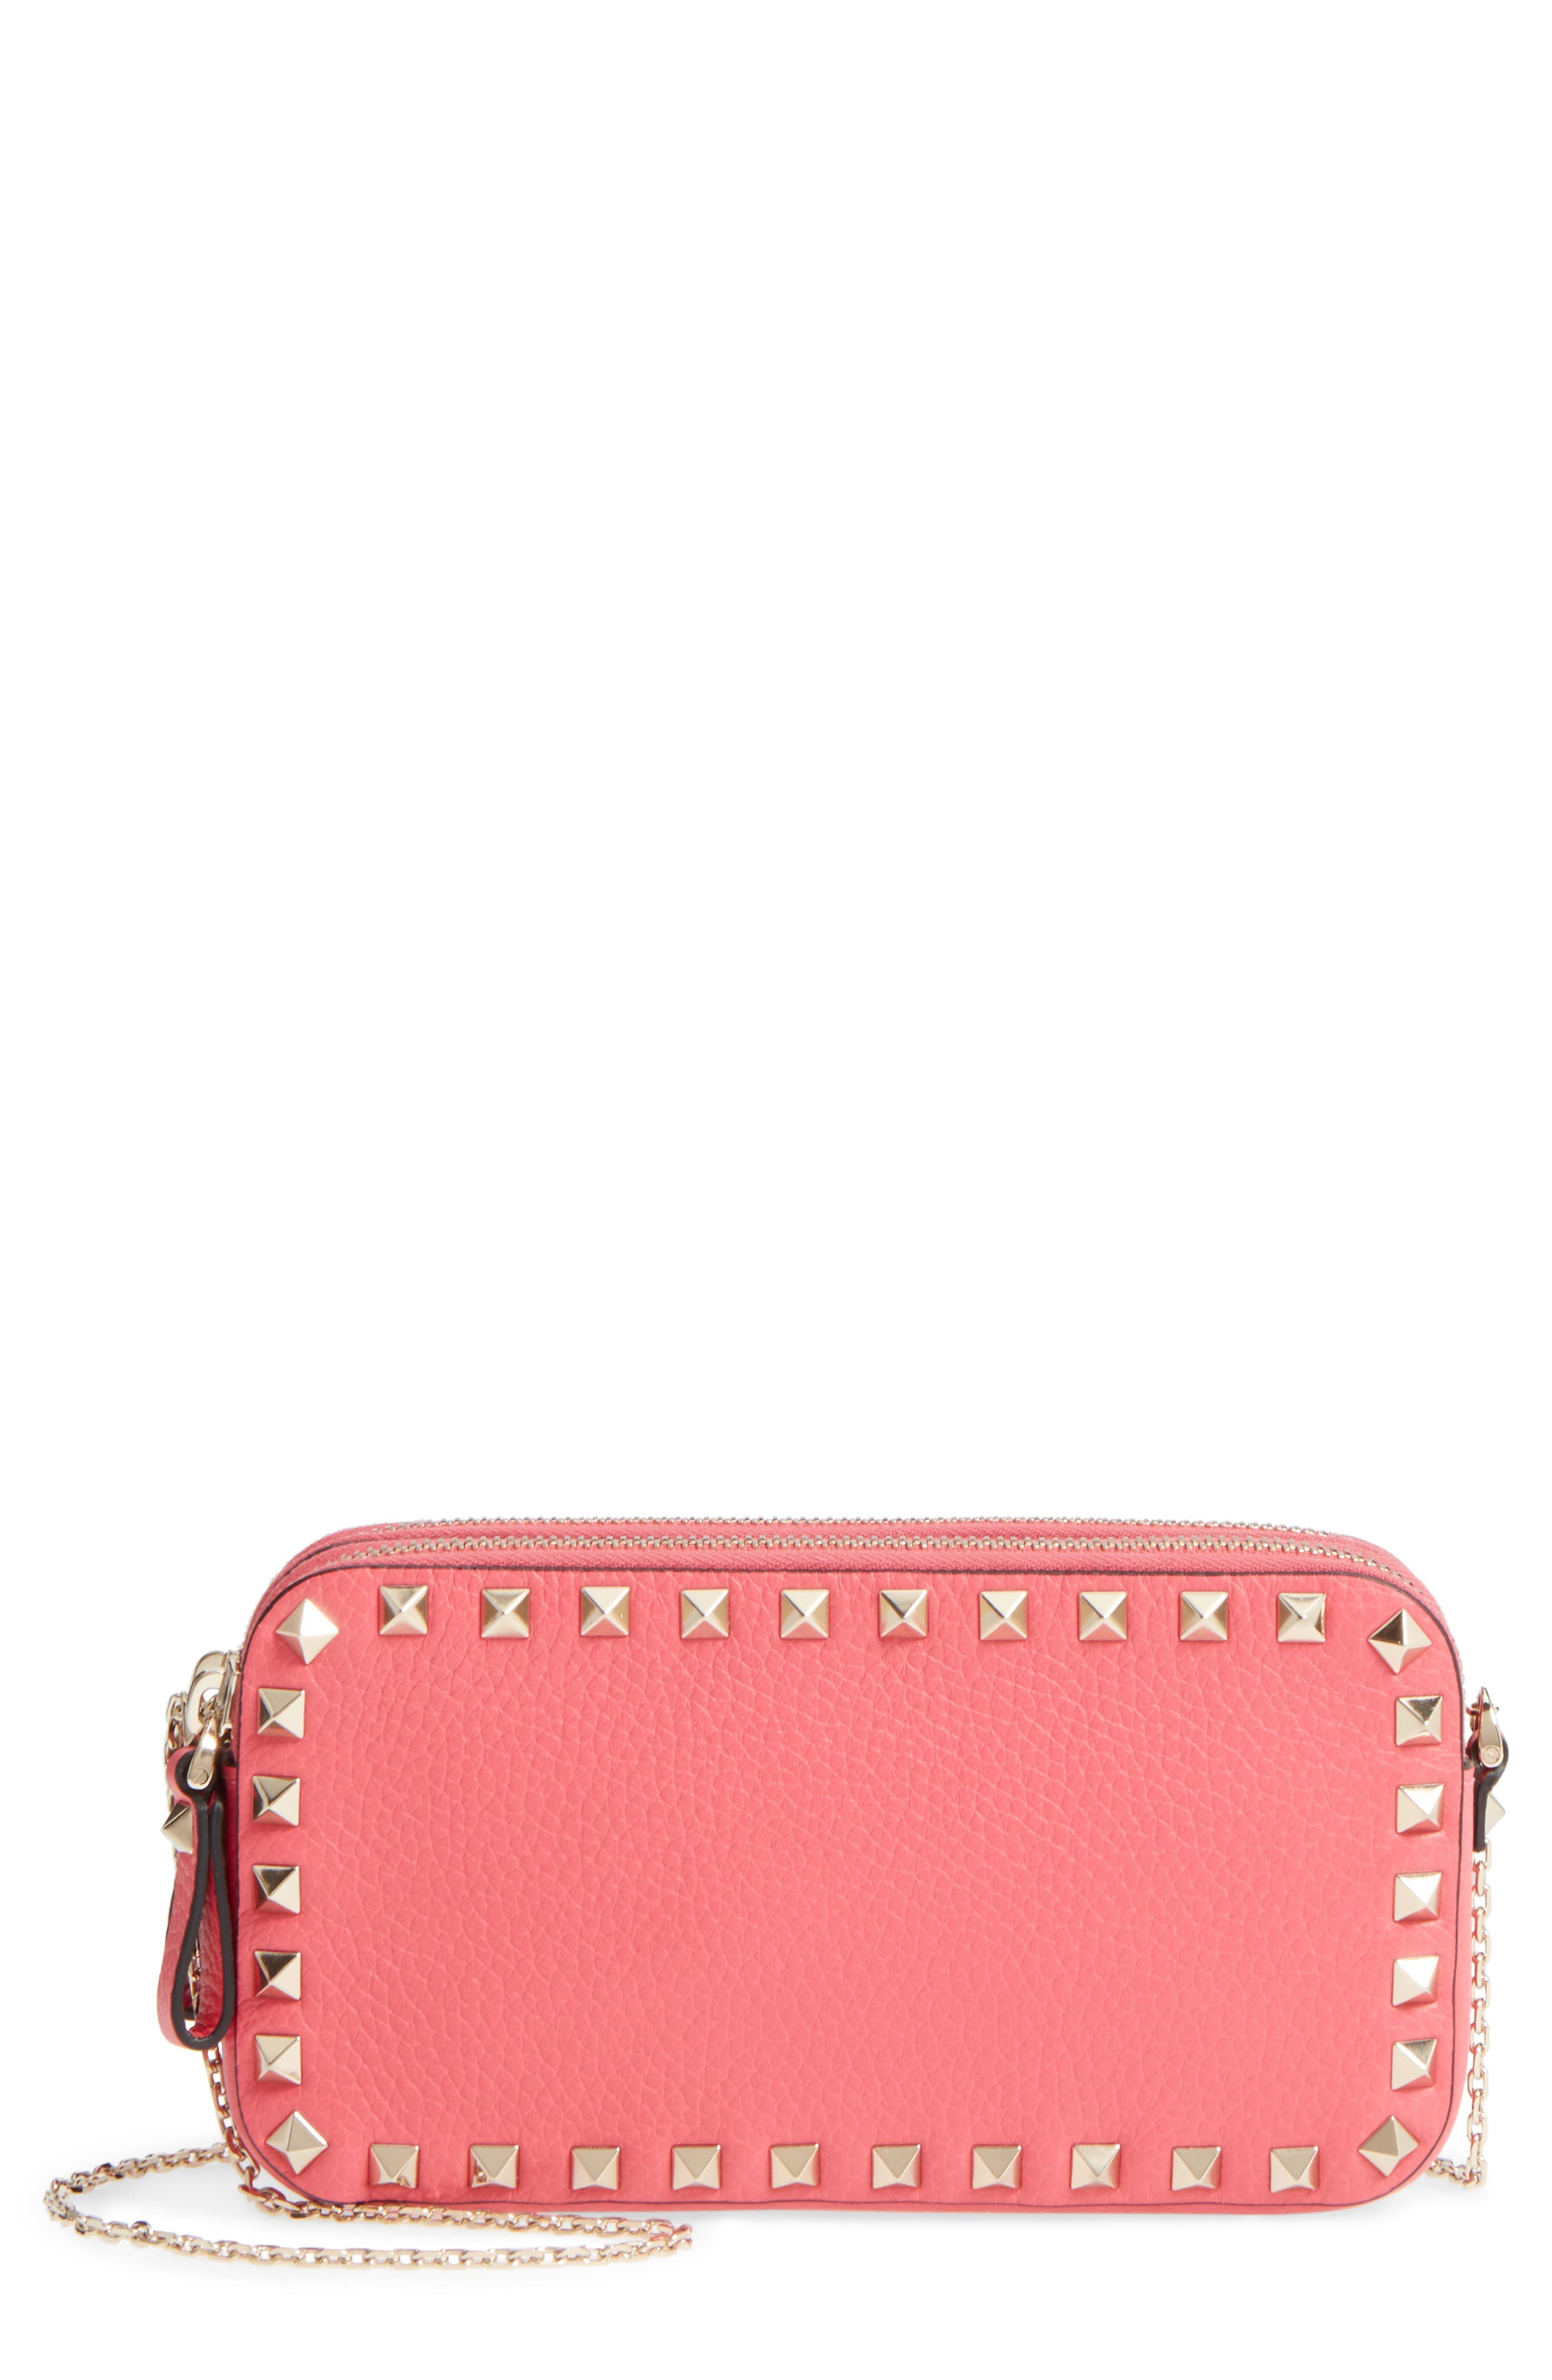 Alternate Image 1 Selected - VALENTINO GARAVANI Rockstud Leather Pouch